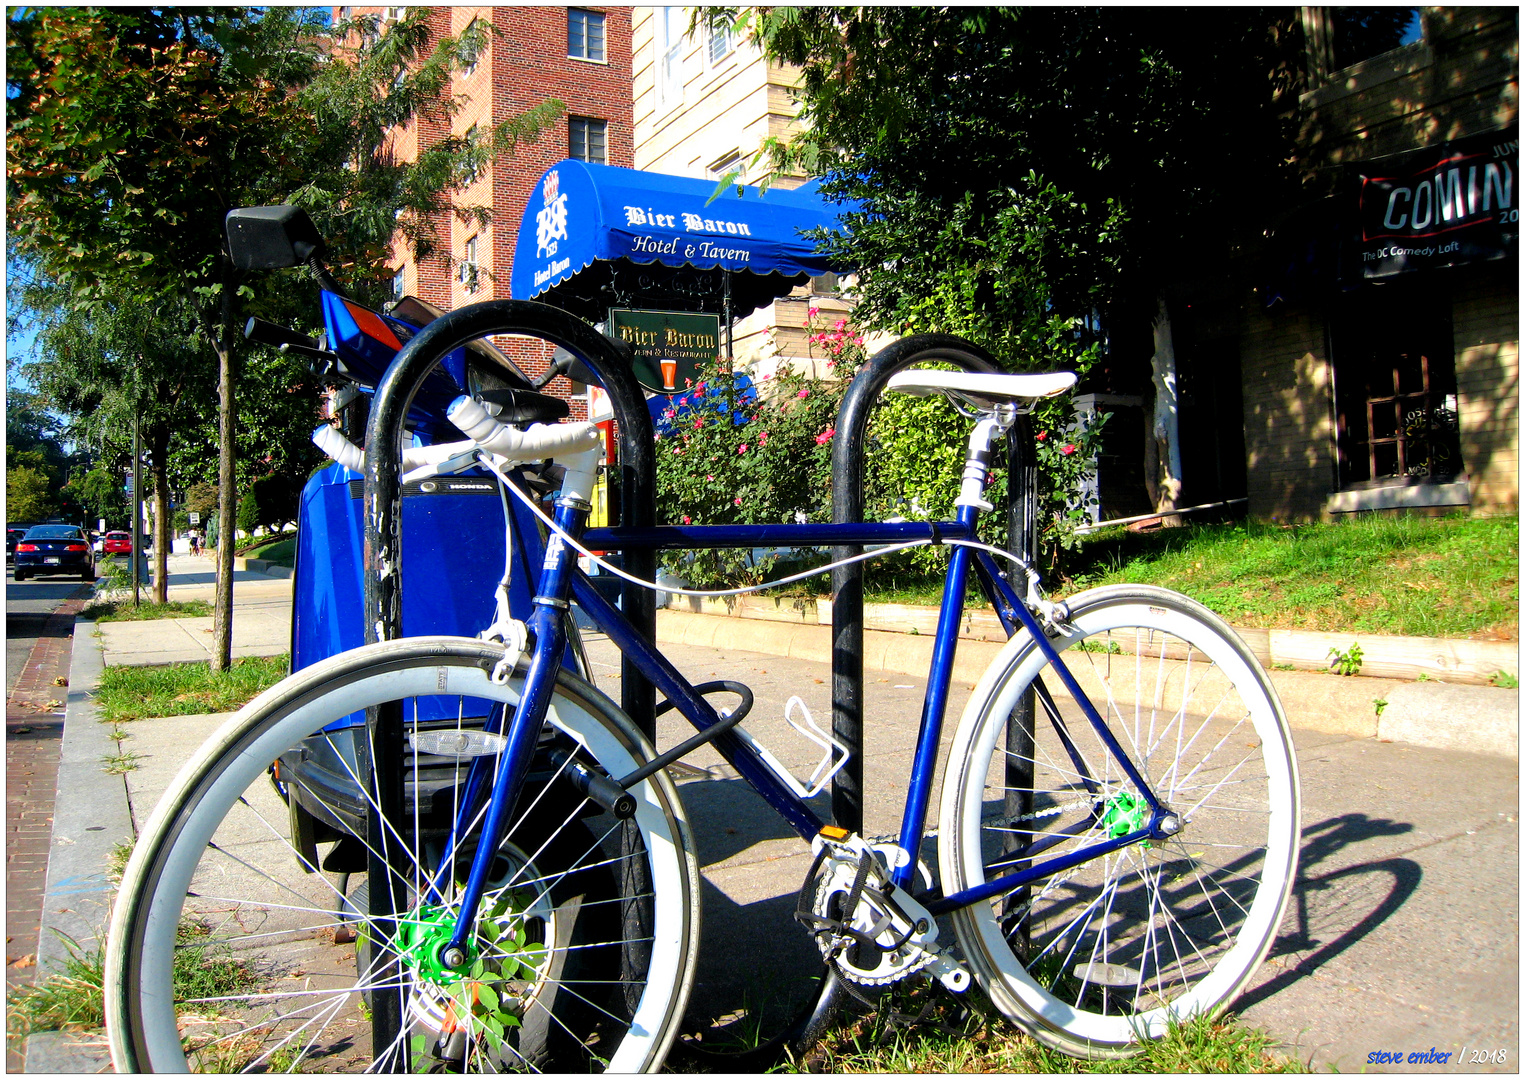 Bikes and Bier Baron - A 'Hoppy' Study in Blue and White